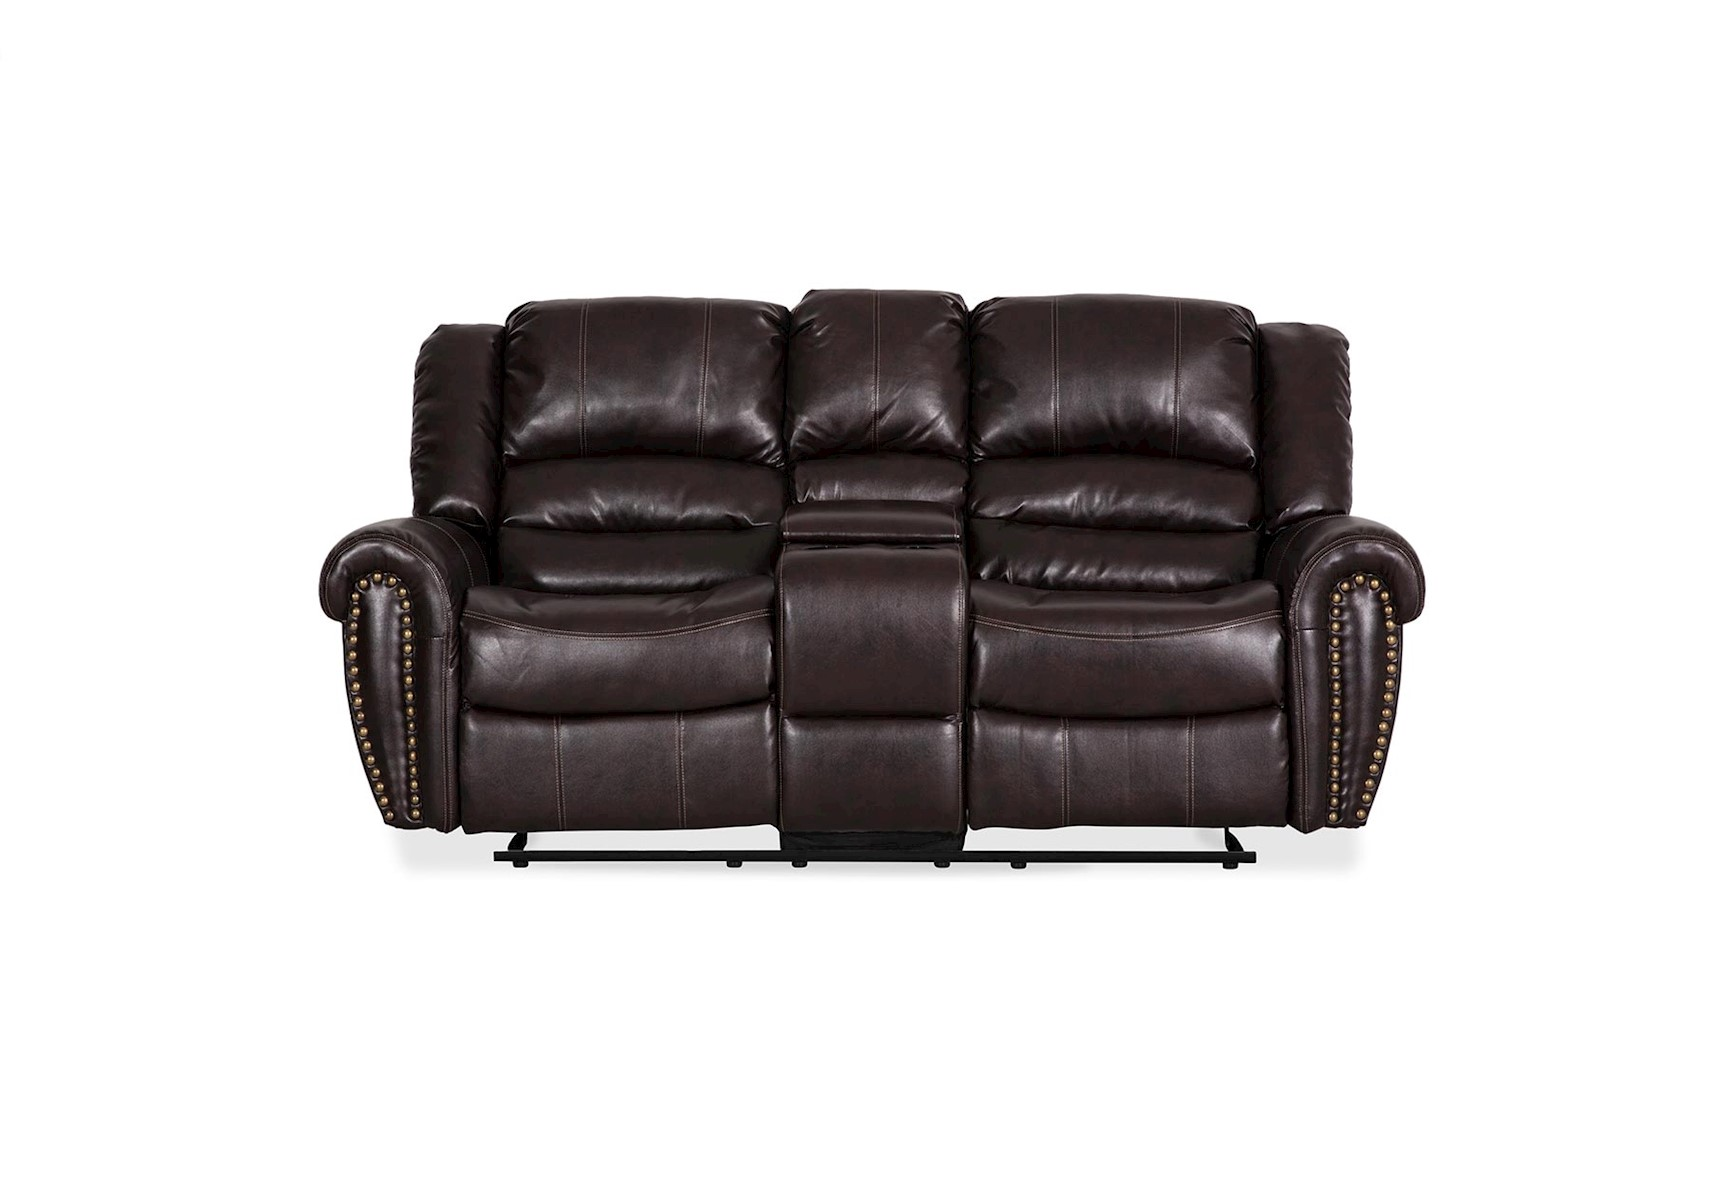 center hill dual reclining loveseat